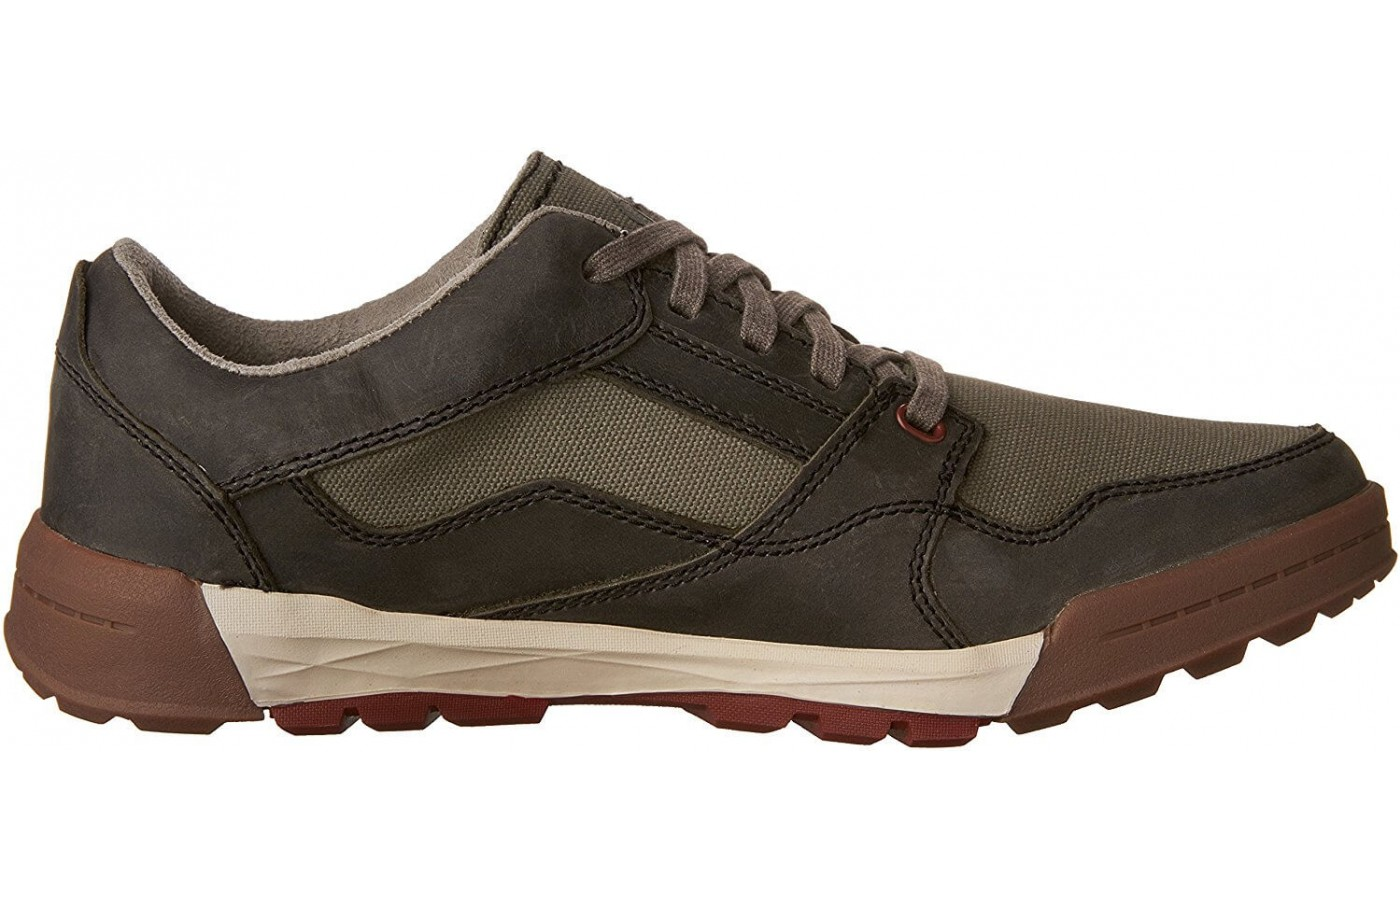 The Merrell Berner Shift Lace features Air Cushion to absorb impact